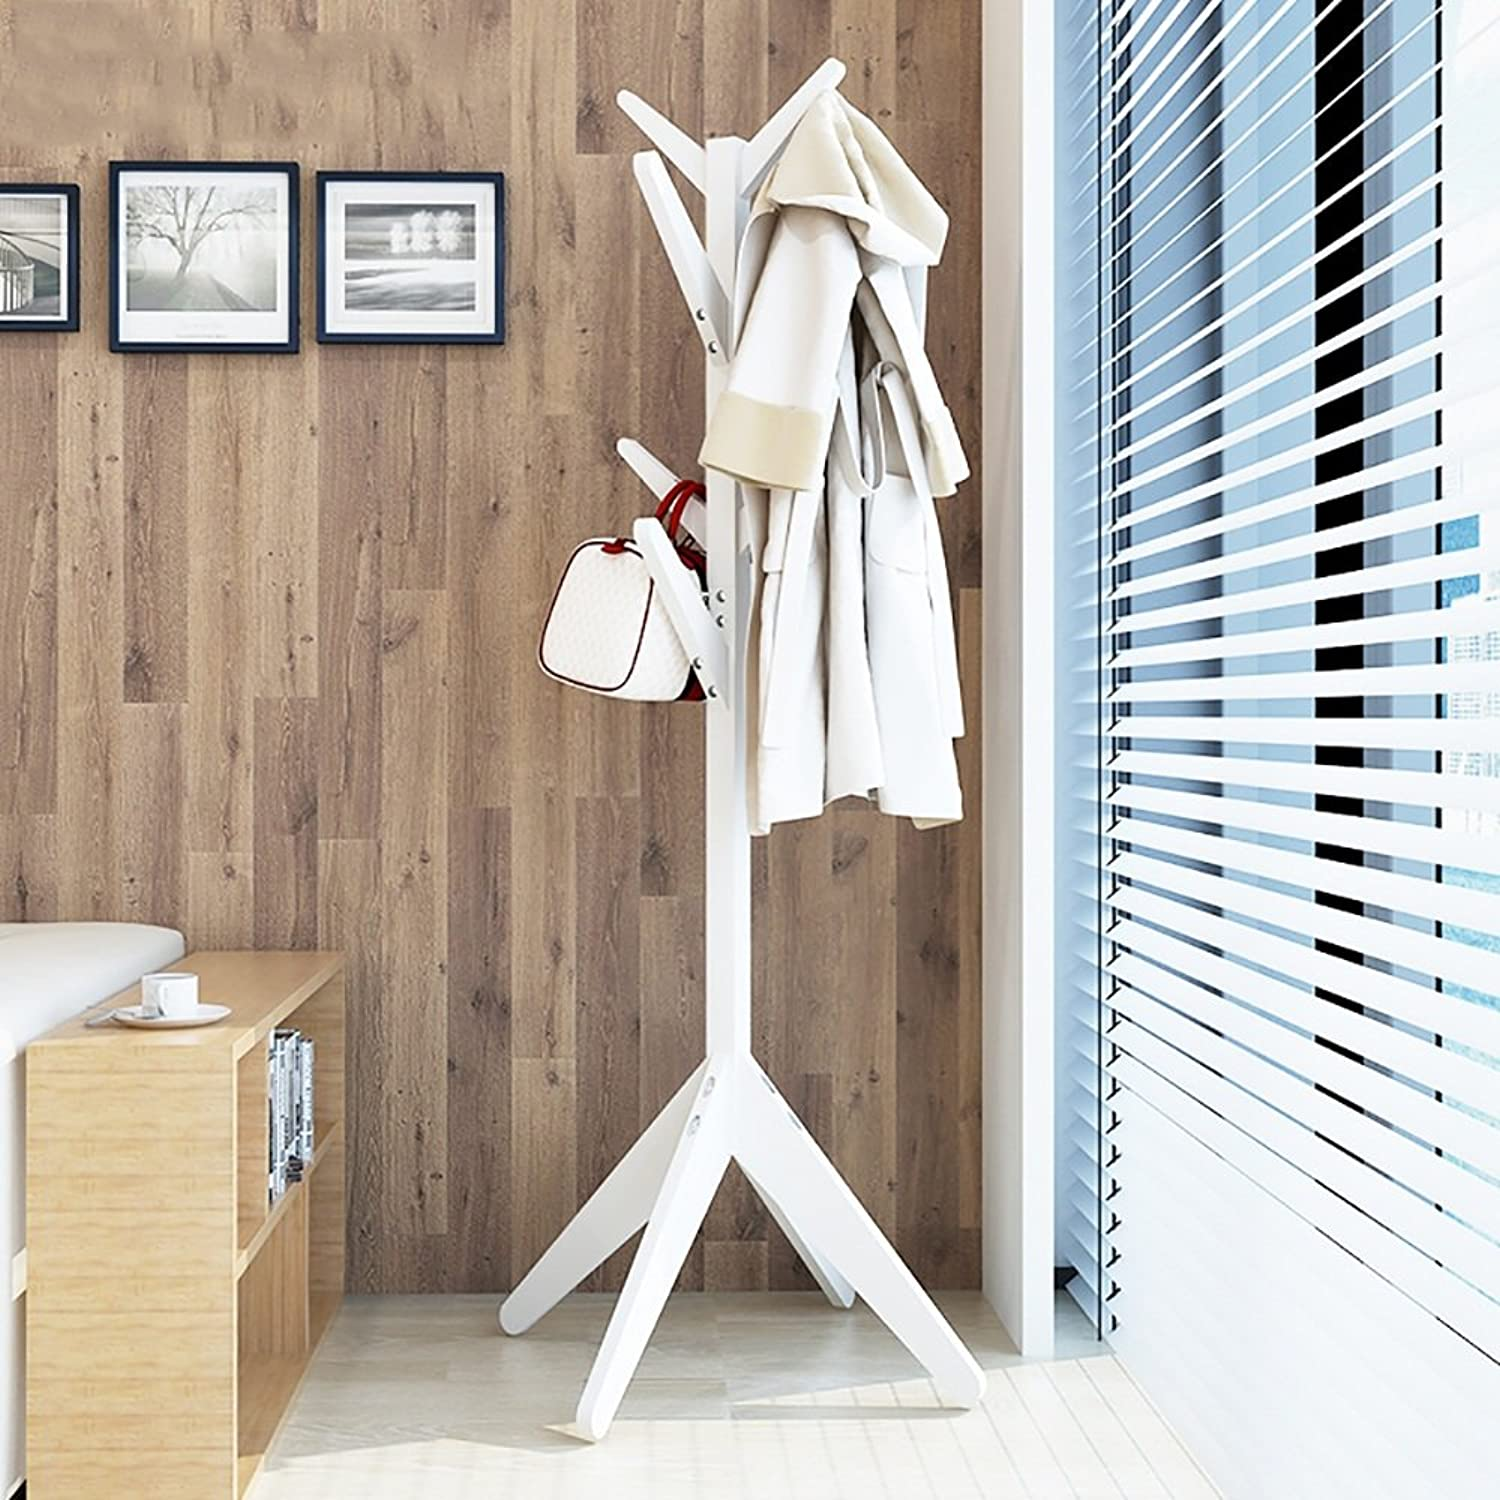 GWDJ Coat Rack Solid Wood Creative Coat Rack Floor-Standing Bedroom Simple Hanger Living Room Clothing Storage Rack Coat Rack Shelf (color   White)